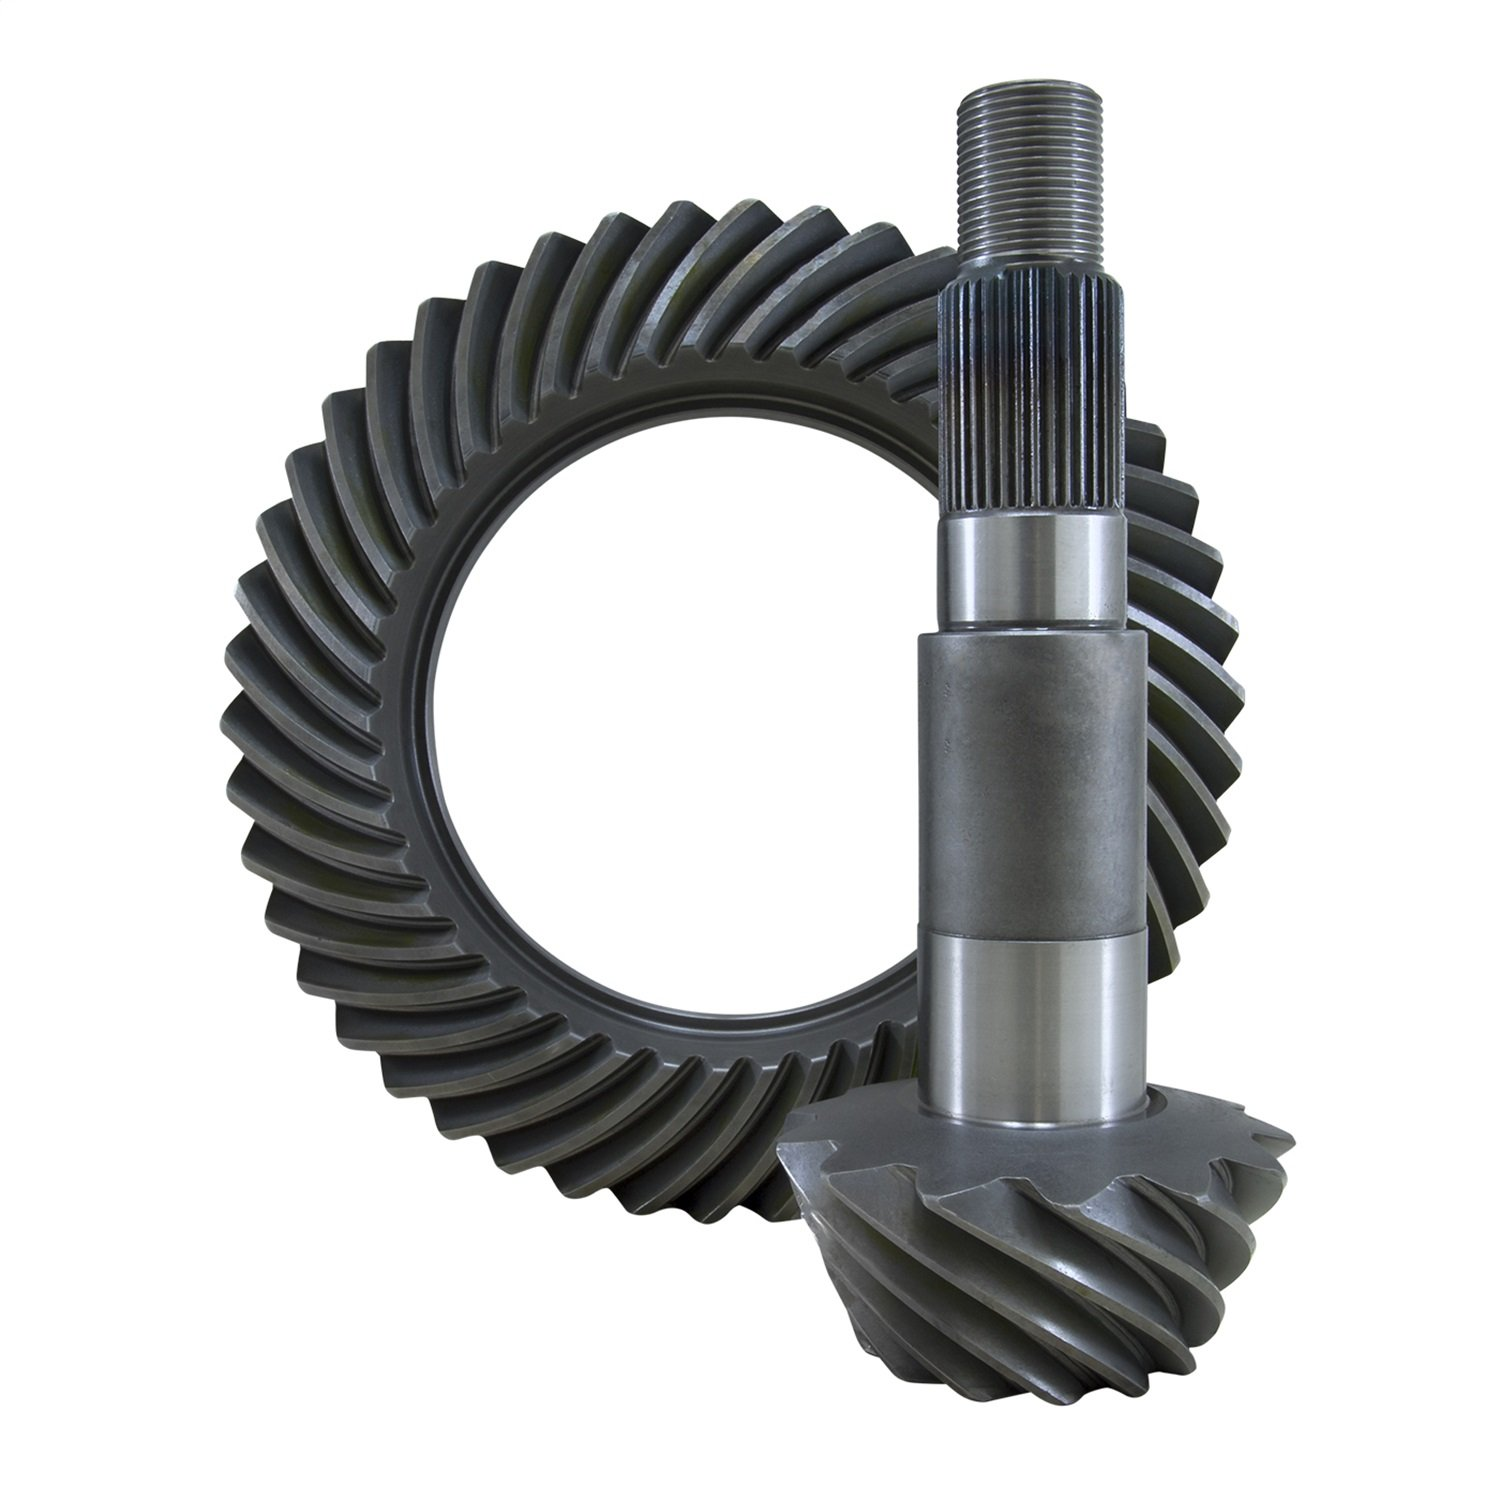 Yukon Gear & Axle (YG D80-430) High Performance Ring & Pinion Gear Set for Dana 80 Differential